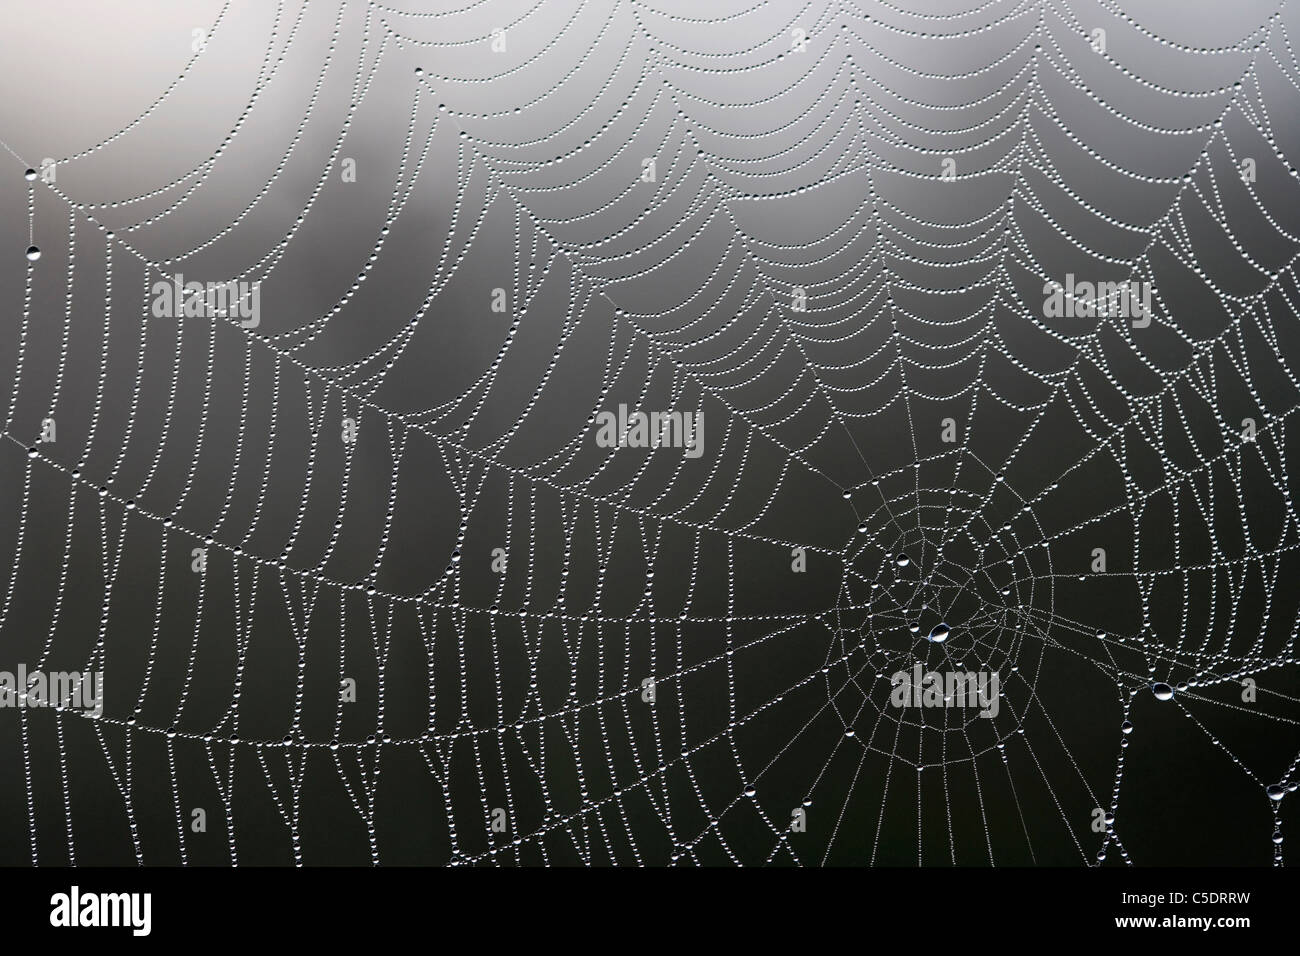 Close-up of dewdrops on spider's web against blurred background - Stock Image